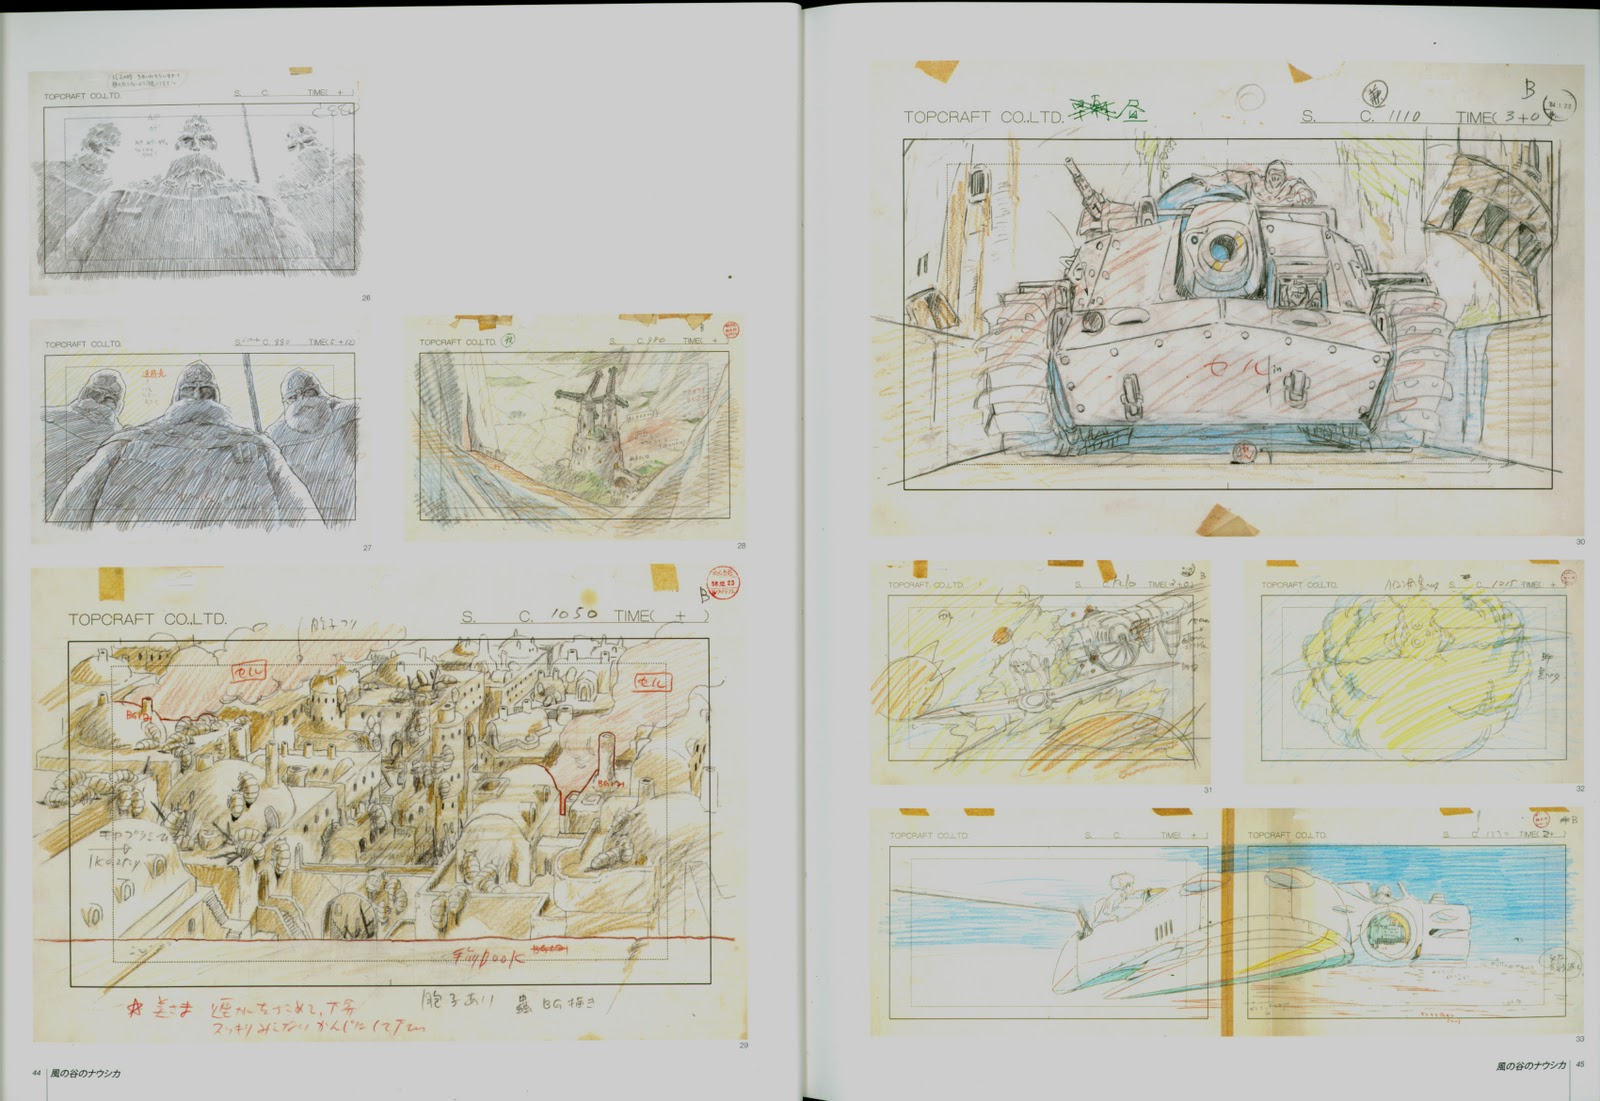 nausicaa_of_the_valley_of_the_wind_concept_art_storyboard_06.jpg